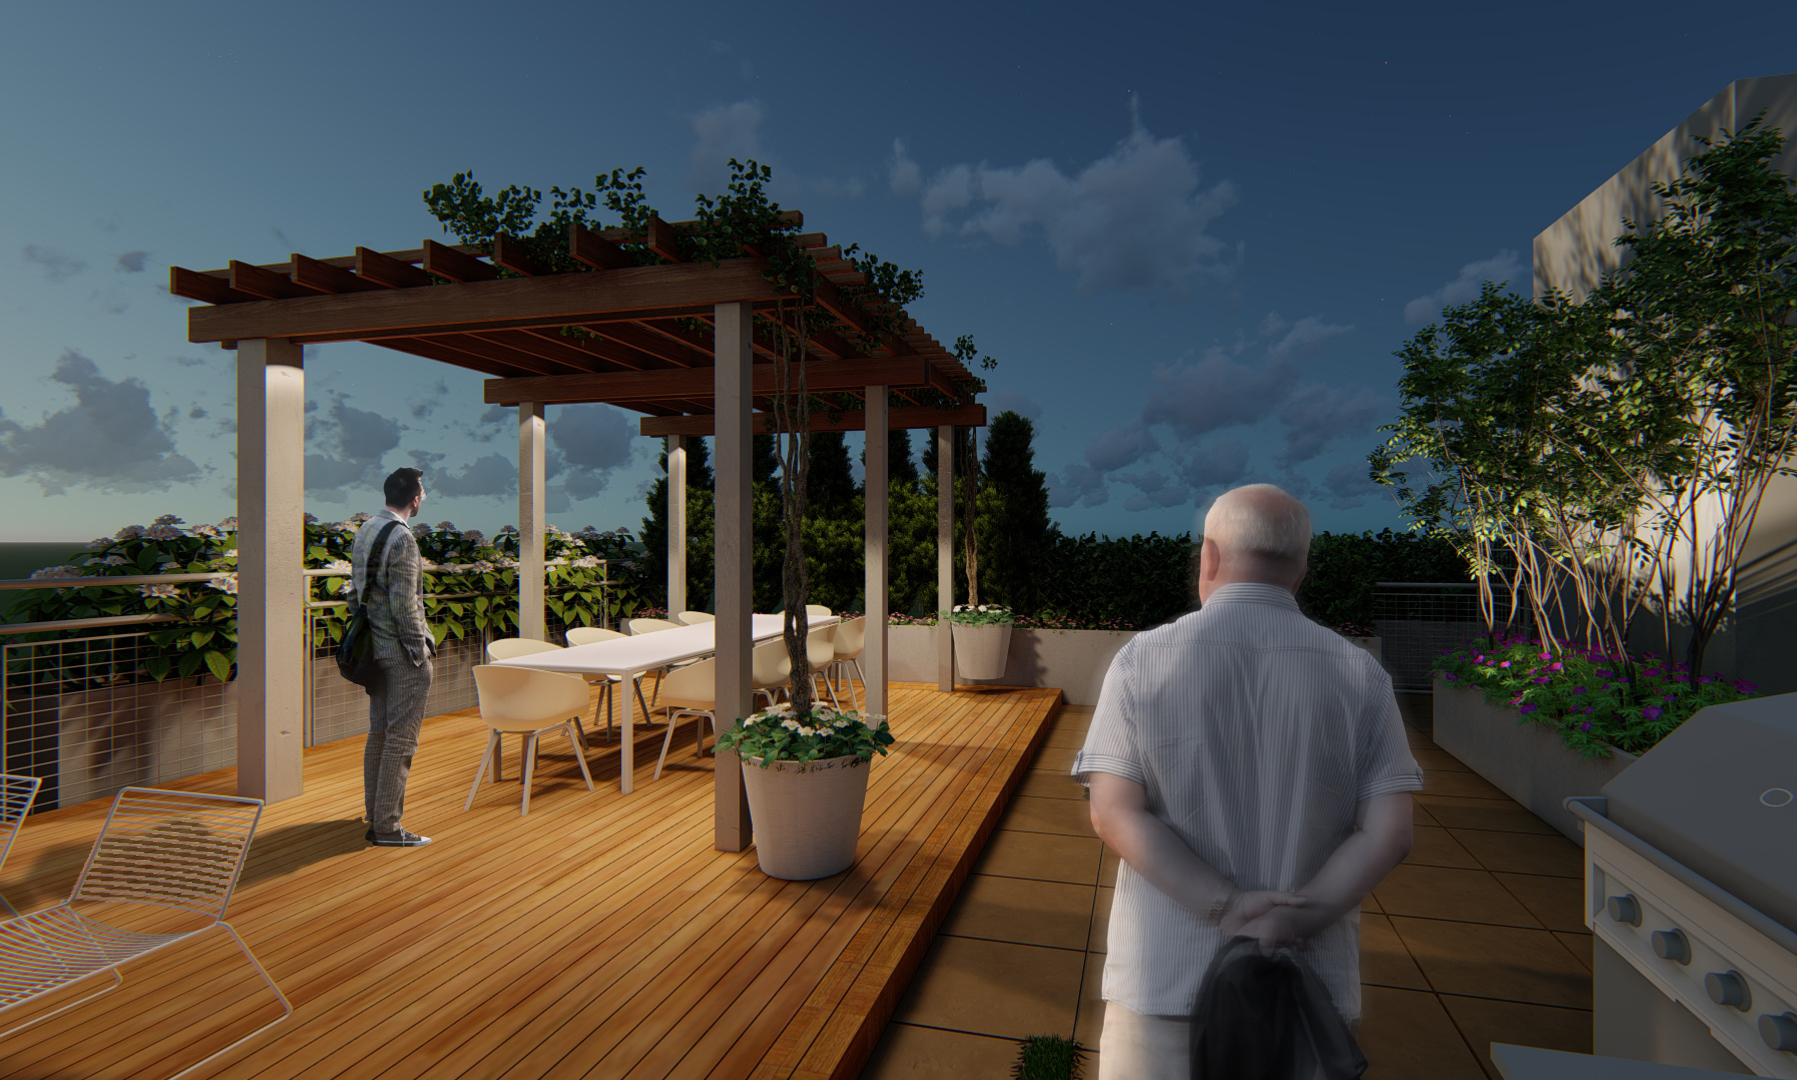 A pre-installation rendering of the pergola.